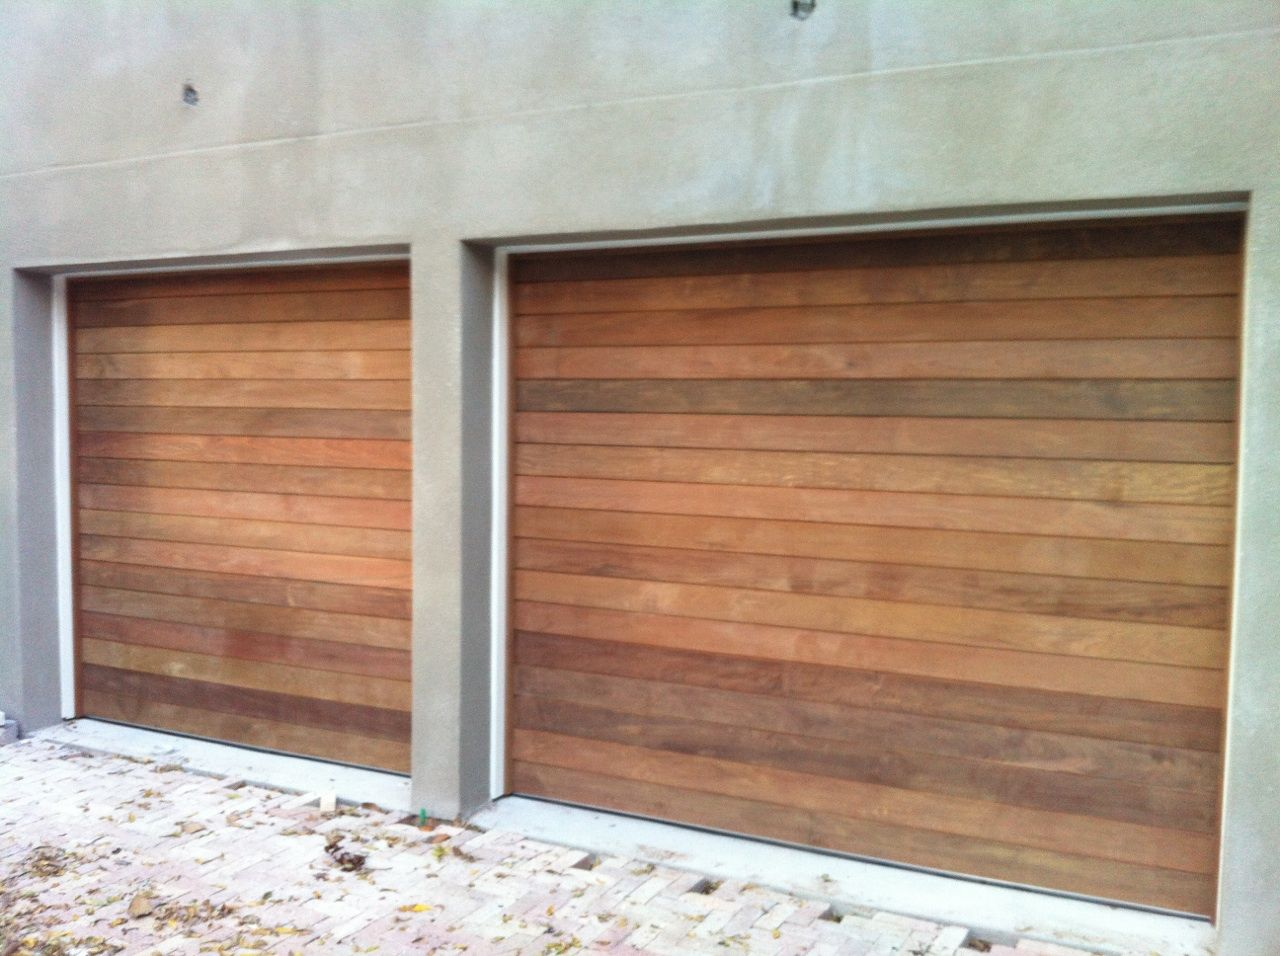 Sleek Modern Garage Doors Hand Crafted By Greg Fletcher Wooden Garage Doors Modern Garage Doors Modern Garage